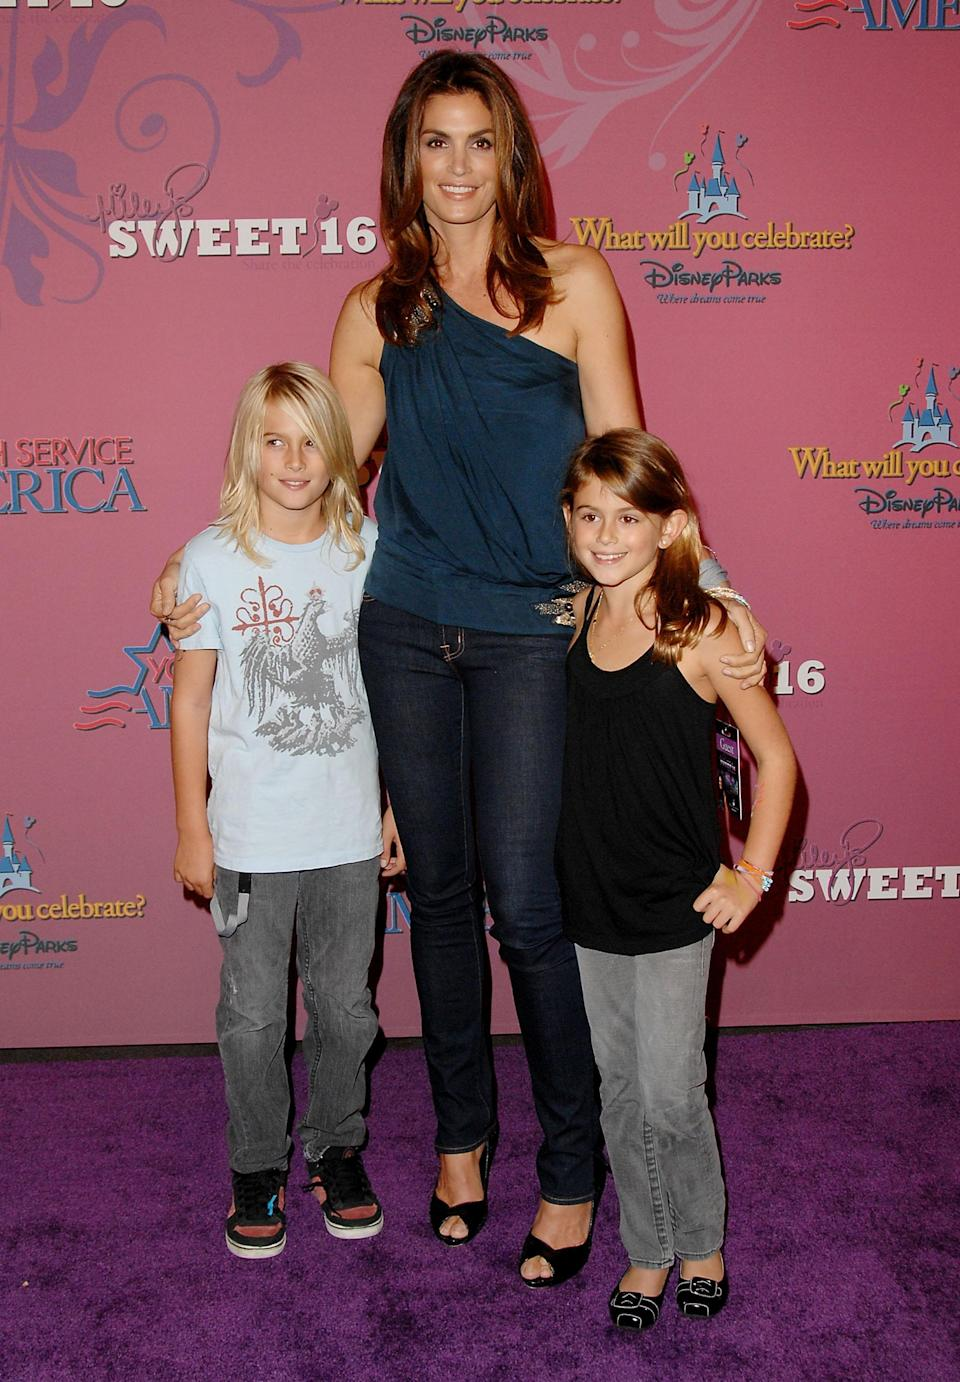 In 2008, Kaia and her brother Presley both attended Miley Cyrus's <em>Sweet 16</em> celebration at Disneyland with their supermodel mom. Kaia wore trendy grey skinny jeans and a simple black tank — how model-off-duty of her.